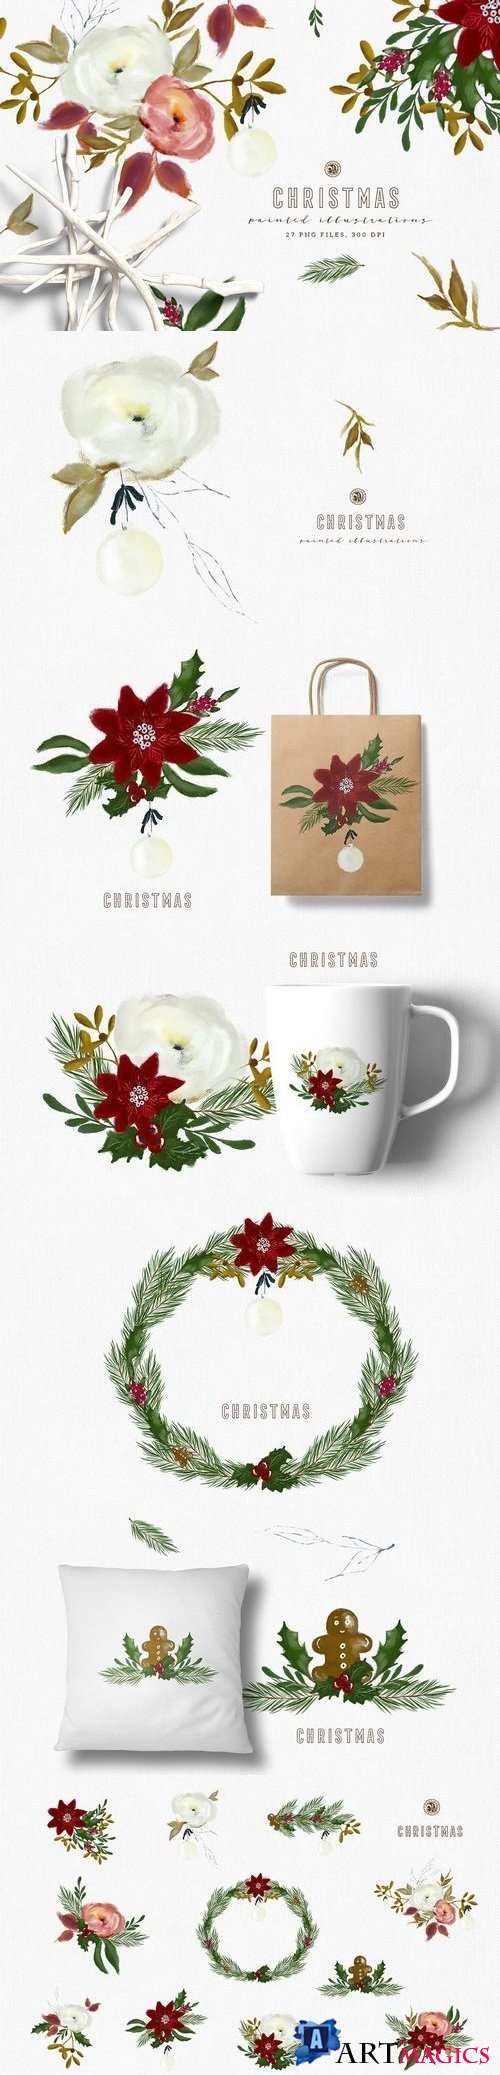 Christmas Paint Illustrations - 1882133